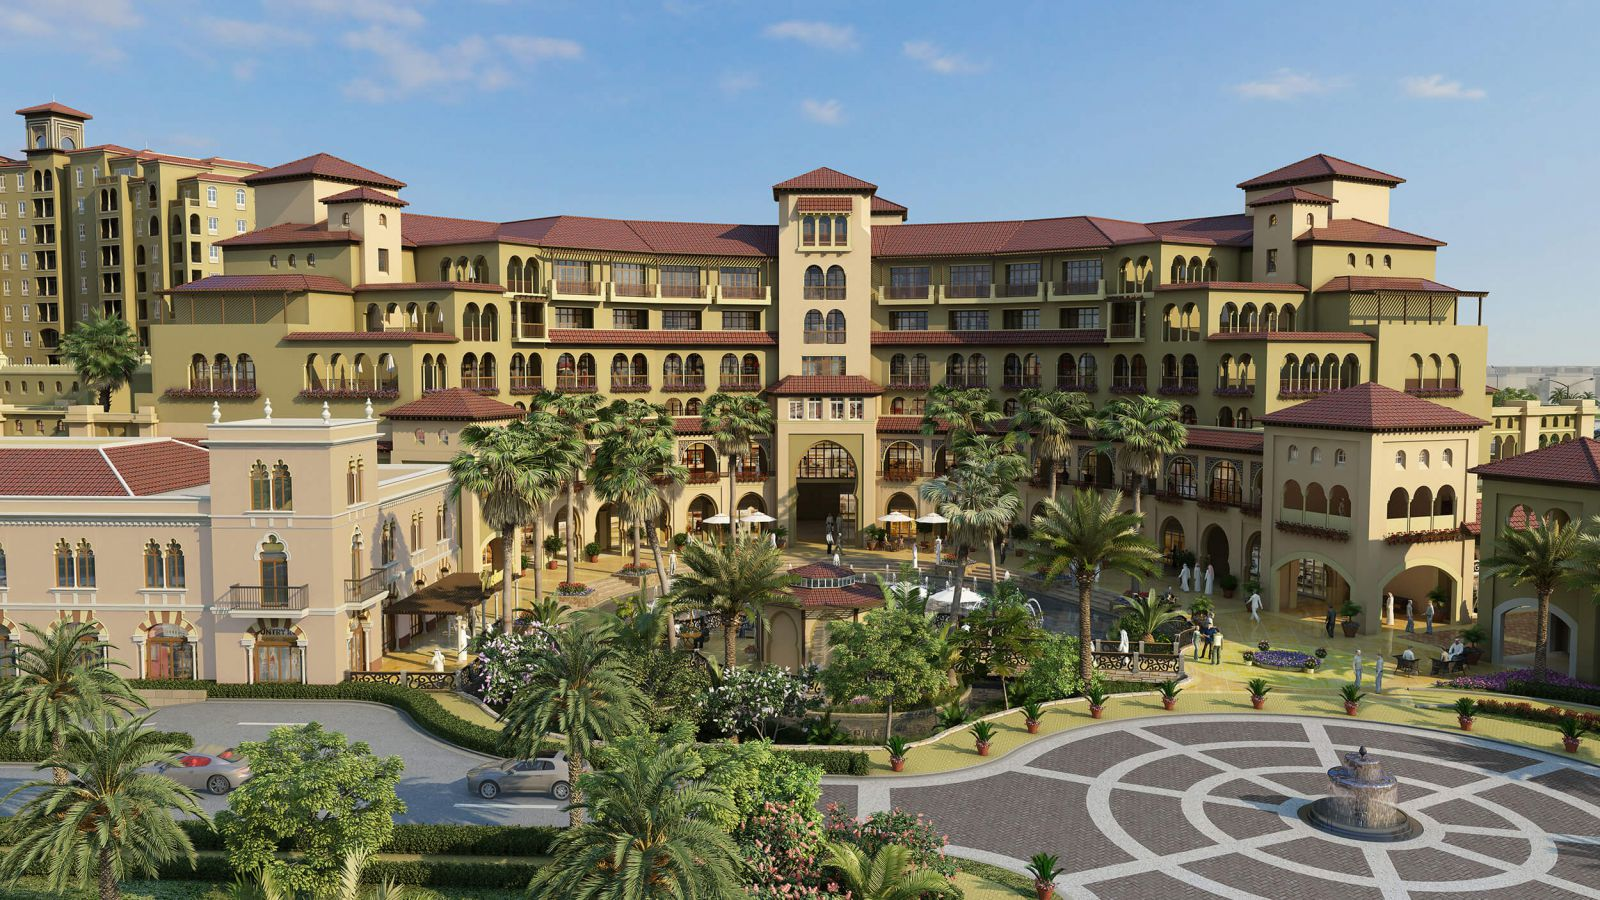 Jumeirah Golf Estates Awards AED 400 Million Contract to build Alandalus Apartments